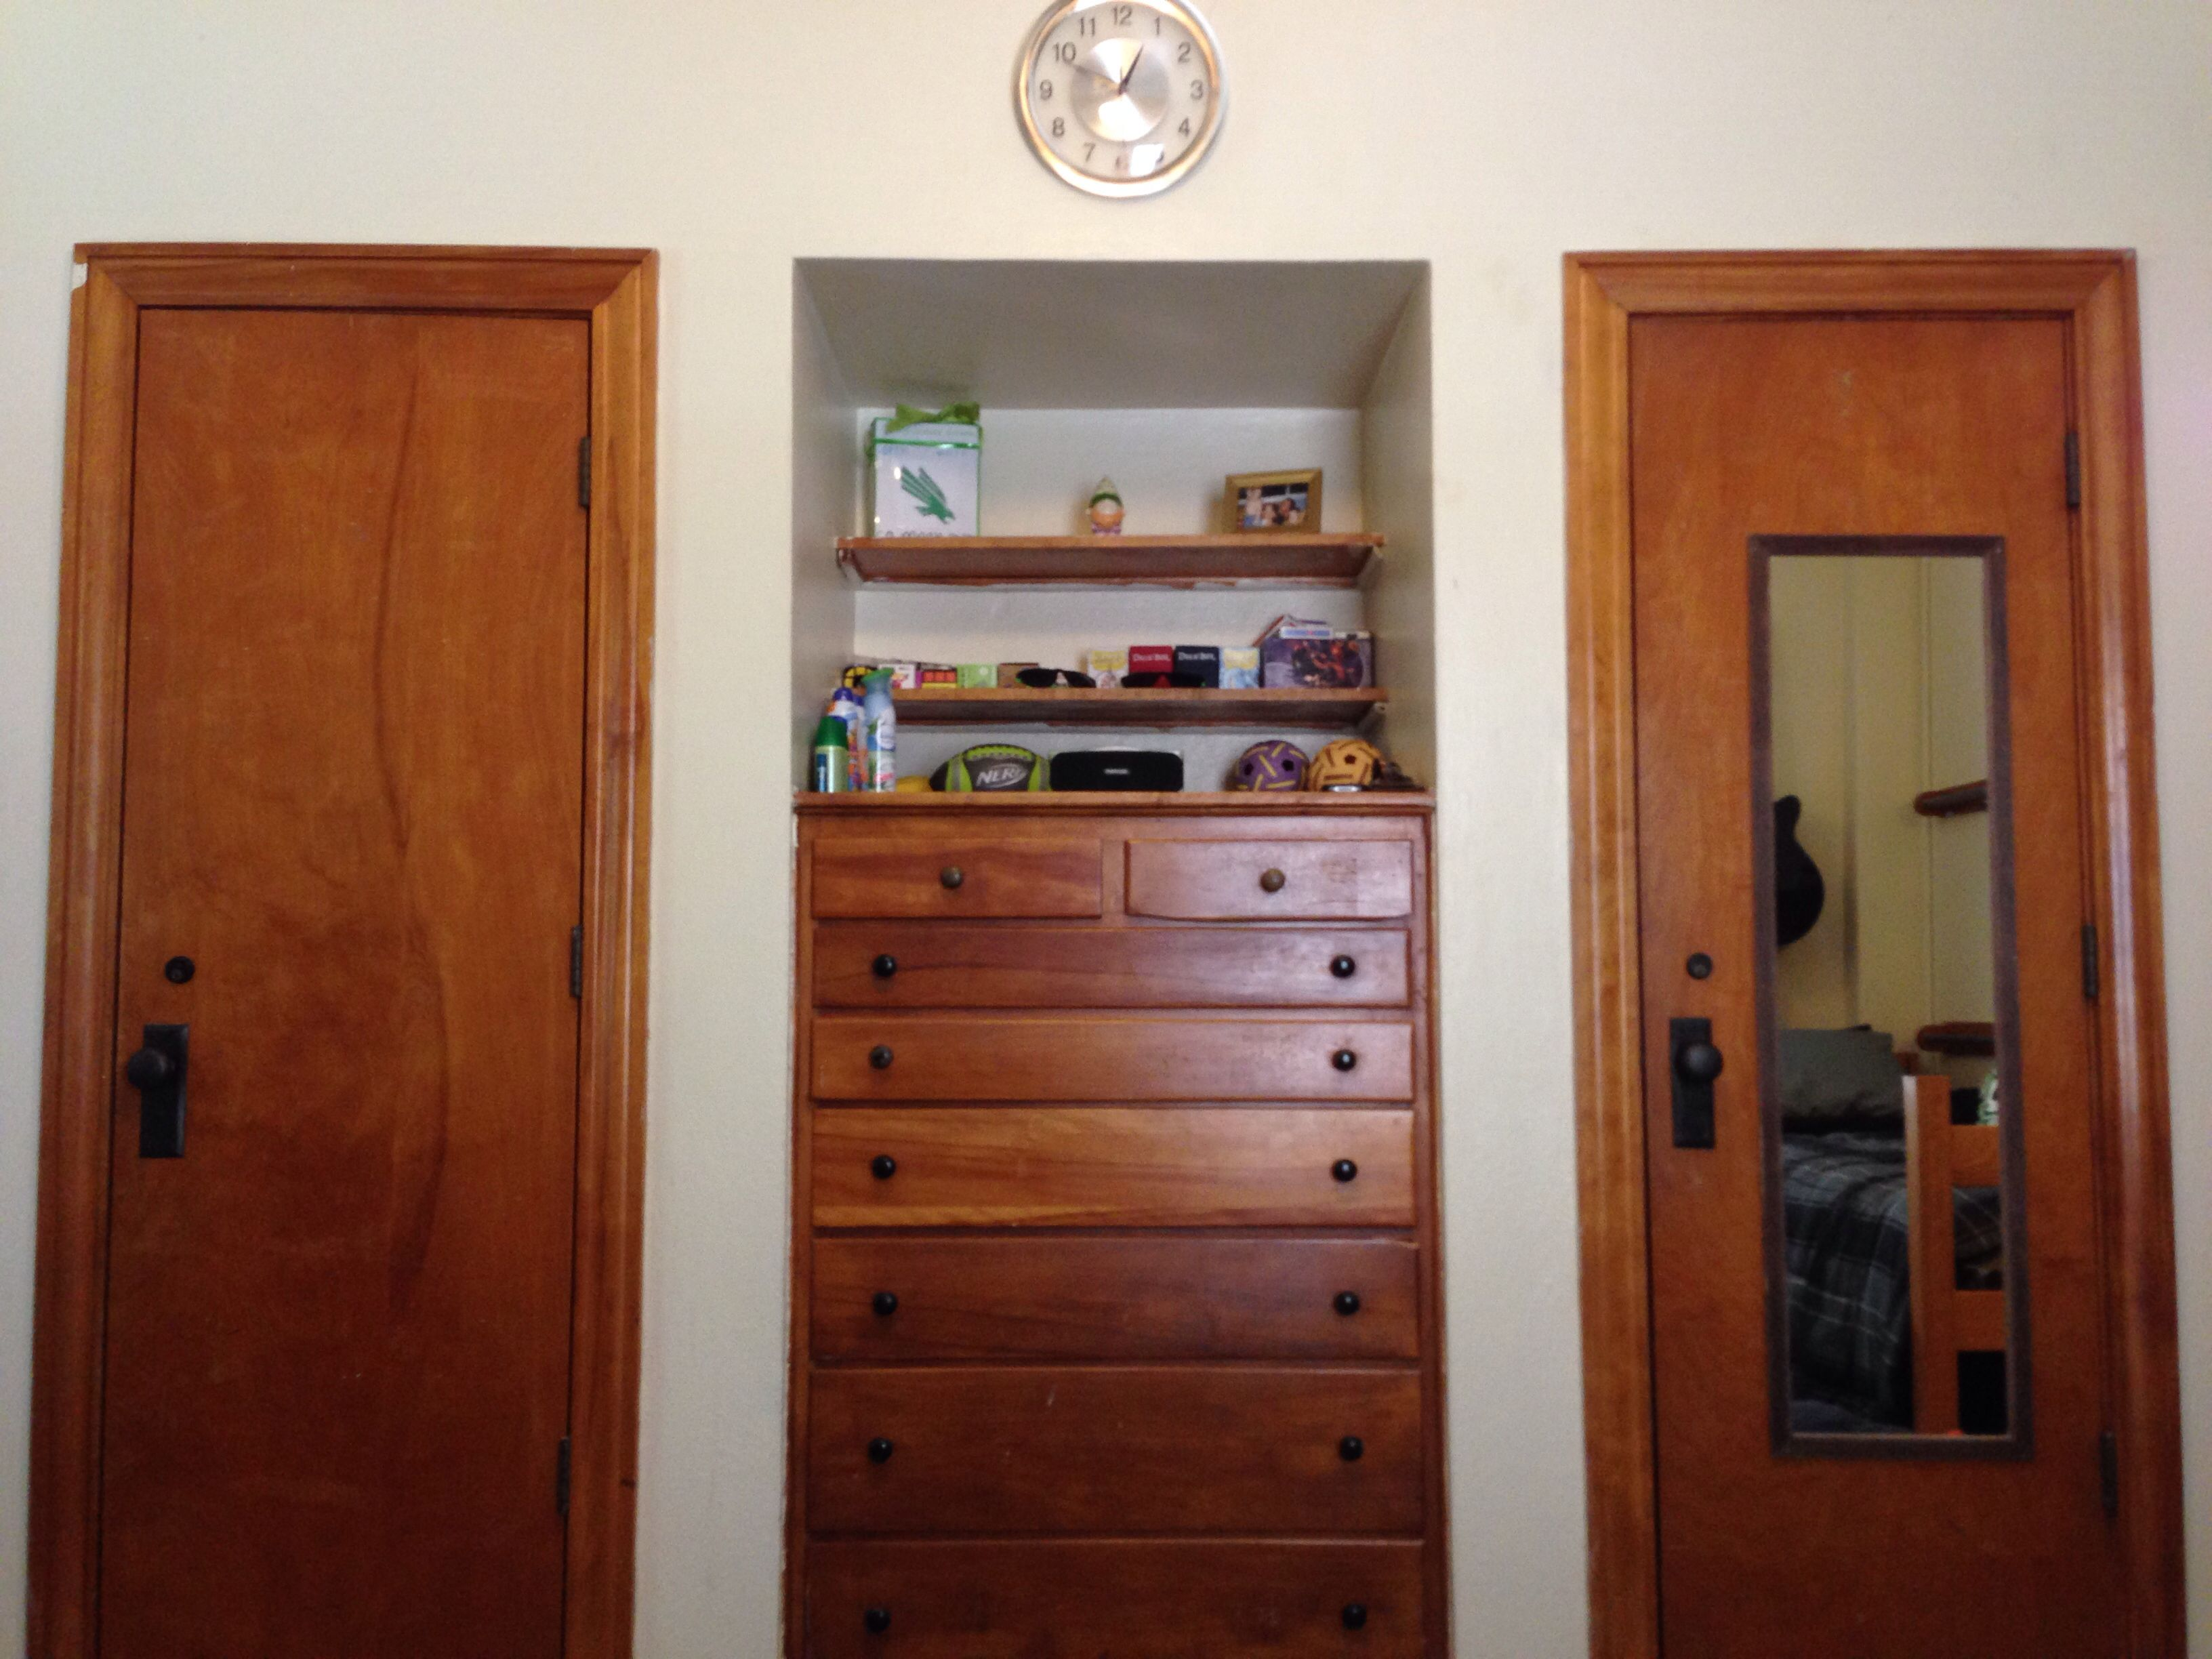 Bruce Hall It May Be The Oldest Dorm Room On The Unt Campus But It Has The Coolest Built In Cabinetry College Dorm Diy Dorm Diy Dorm Sweet Dorm